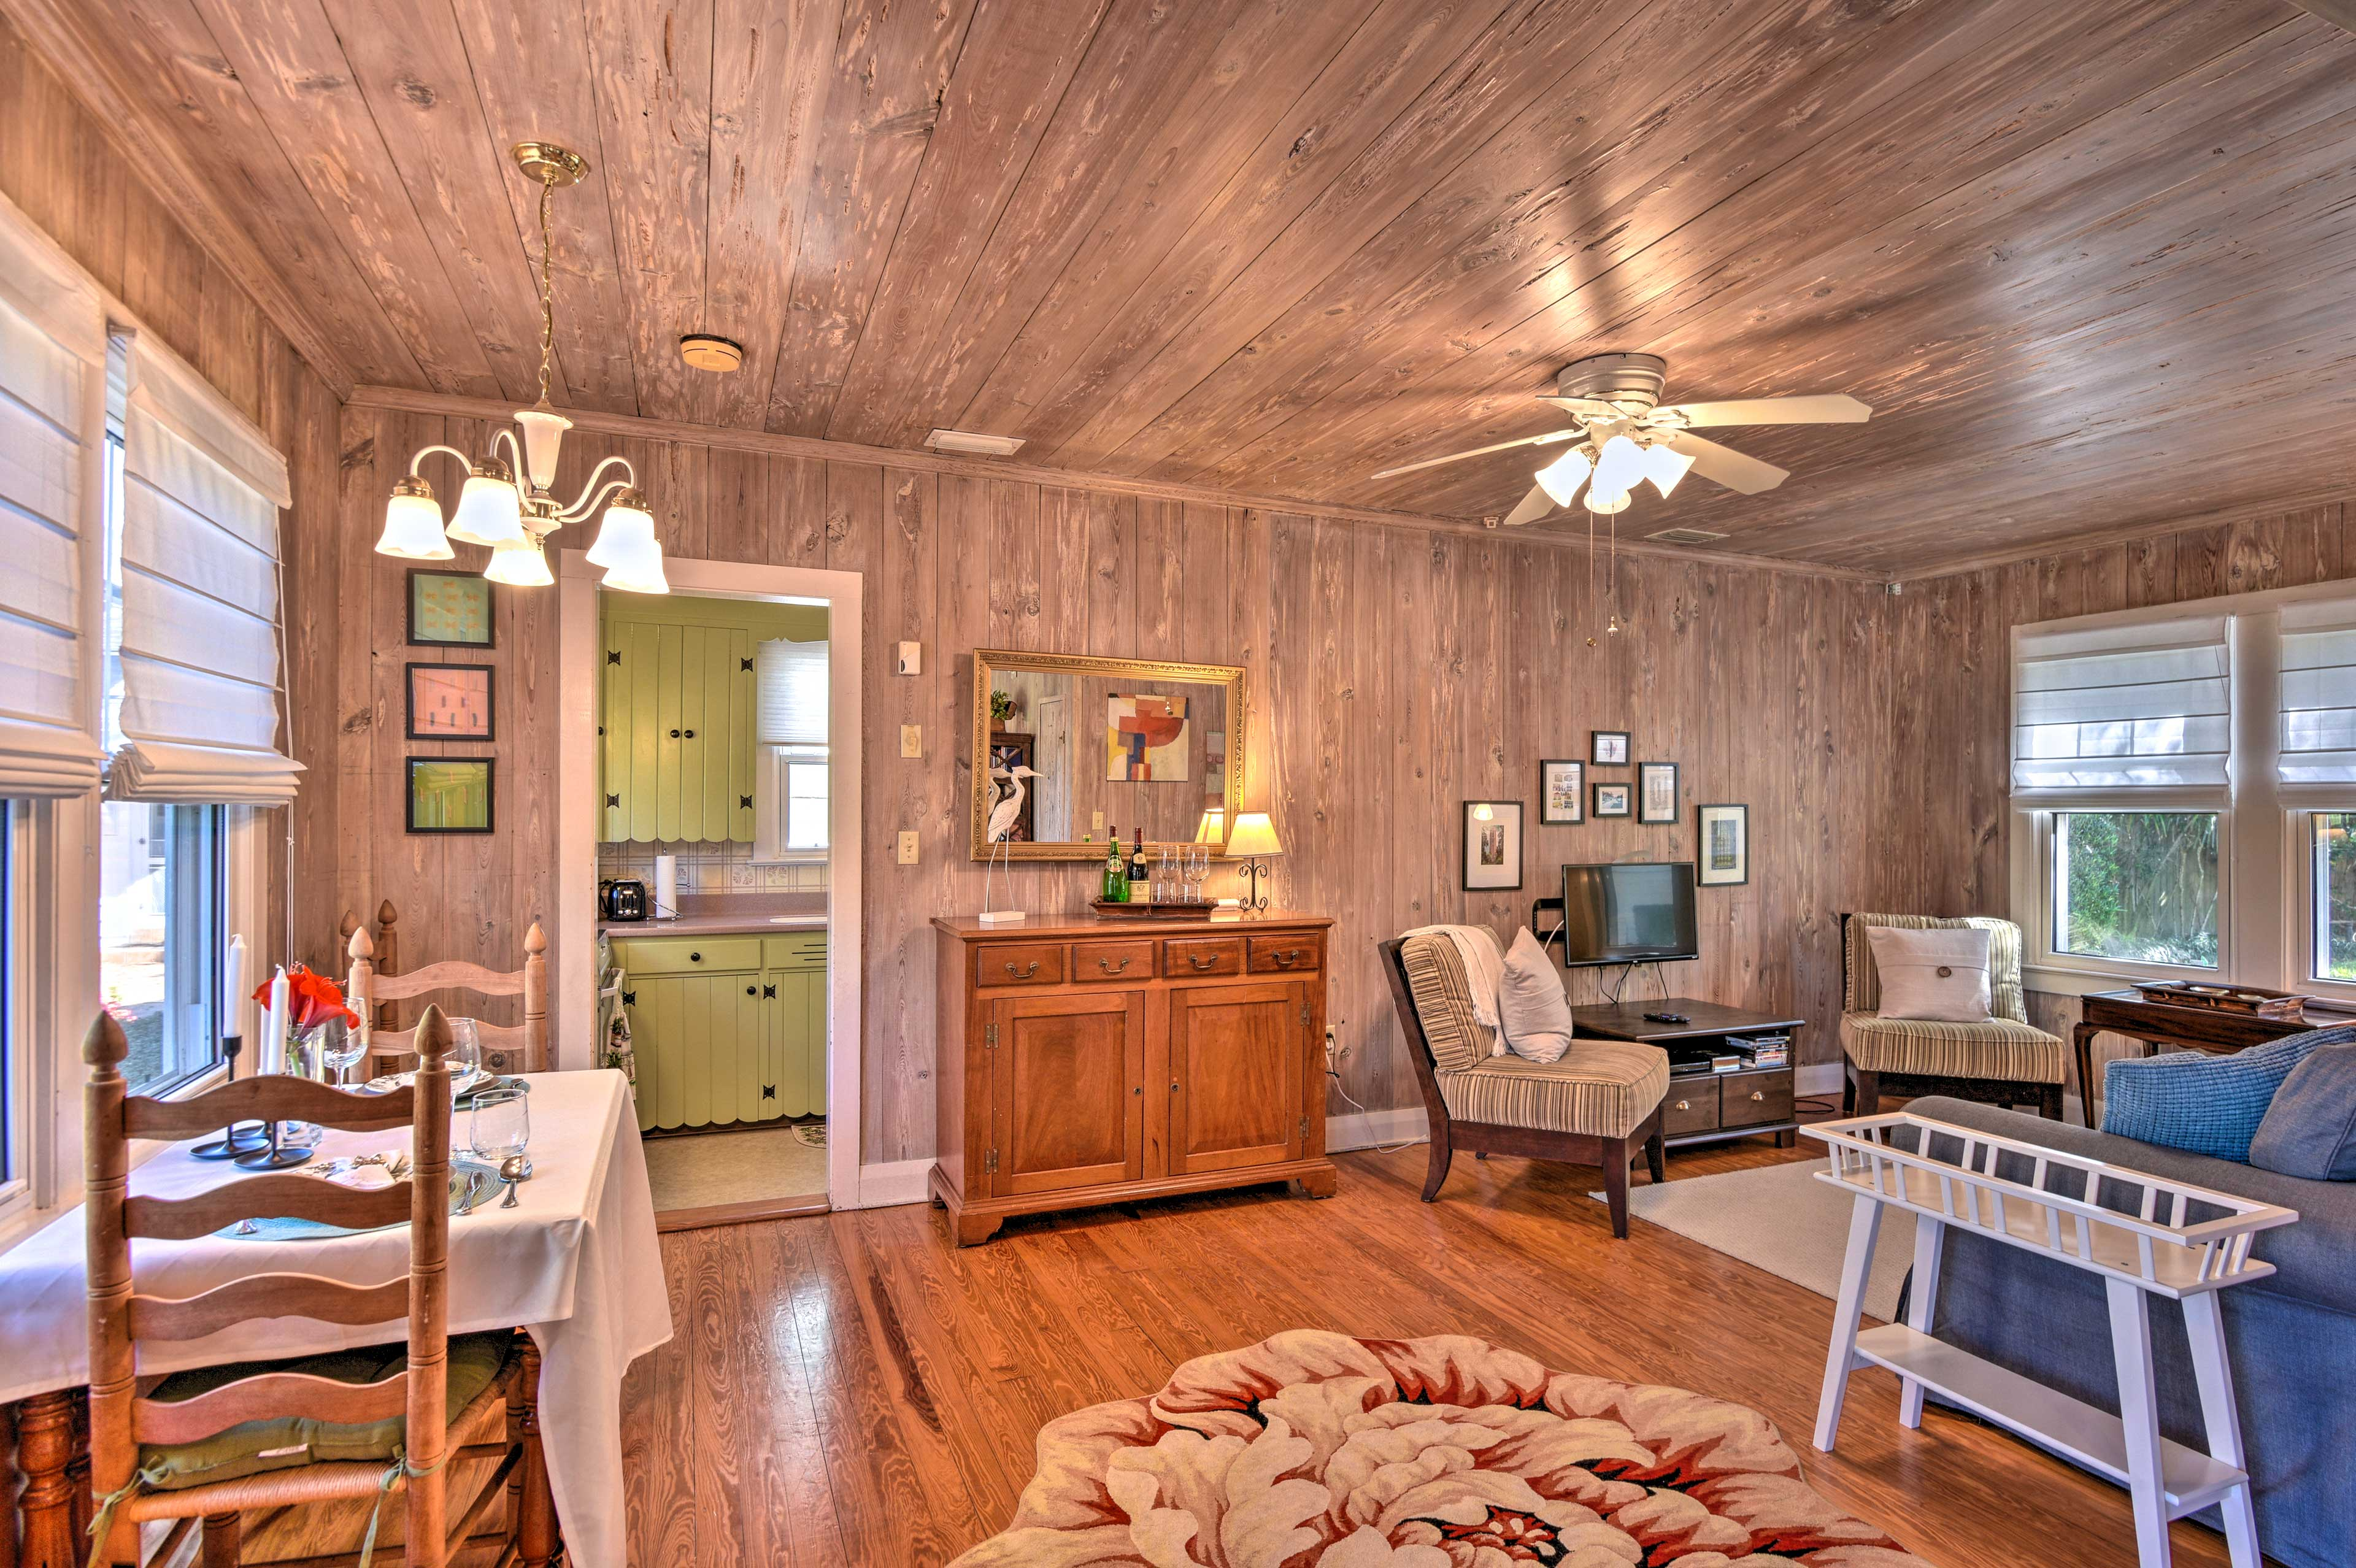 The 1,000-square-foot interior is full of comfort and charm.